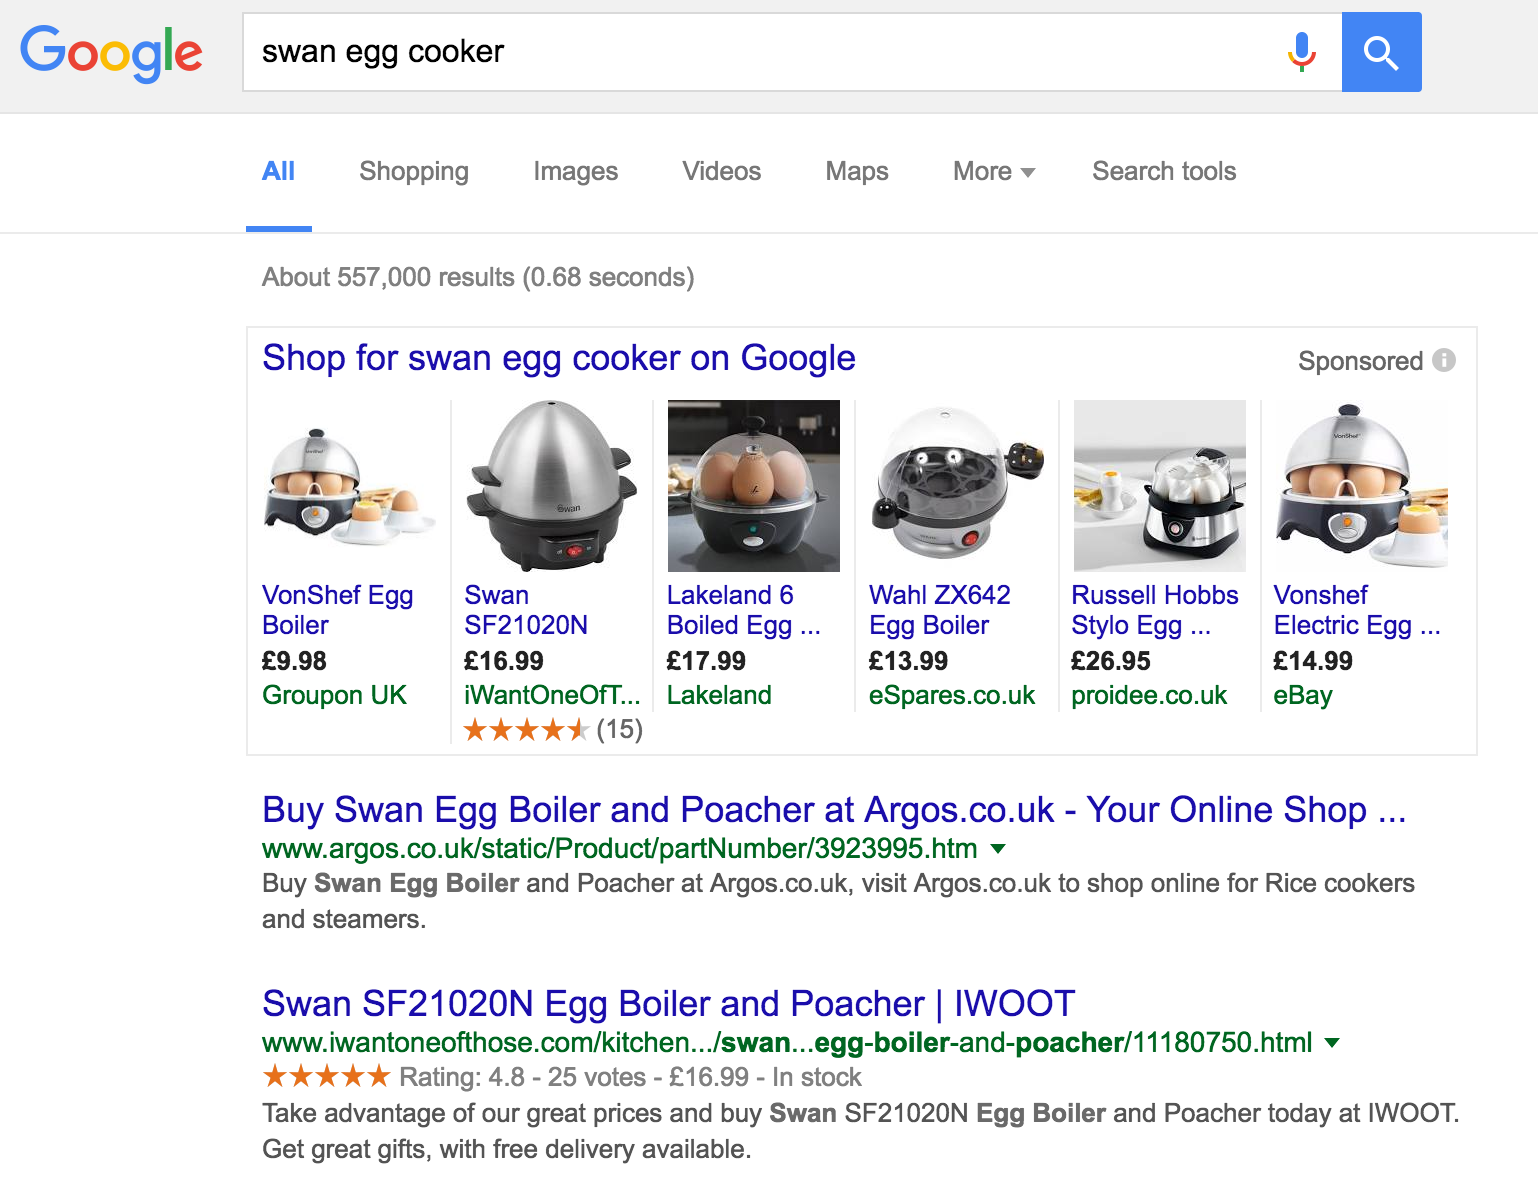 Swan Egg Cooker Search Result